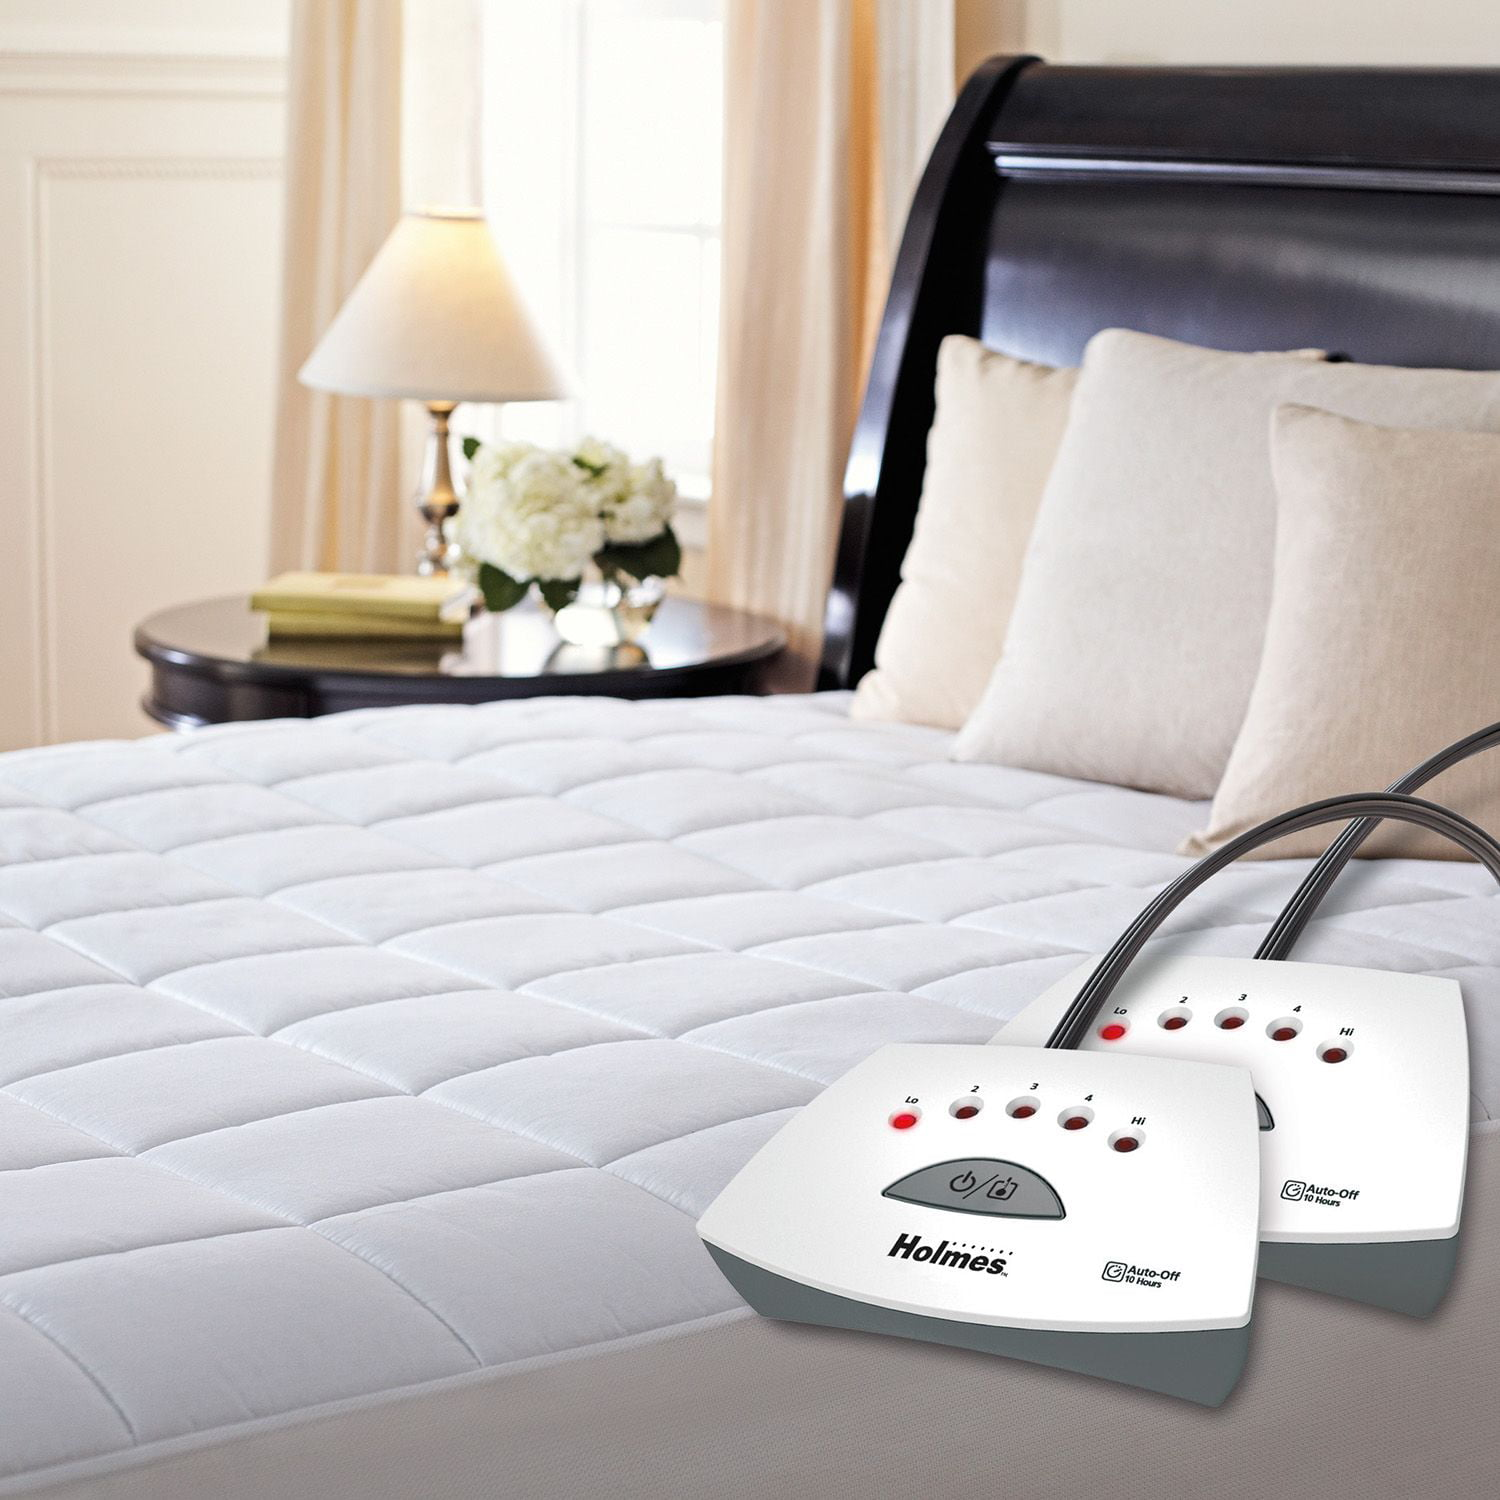 Holmes Quilted Heated Mattress Pad (Queen) by Holmes